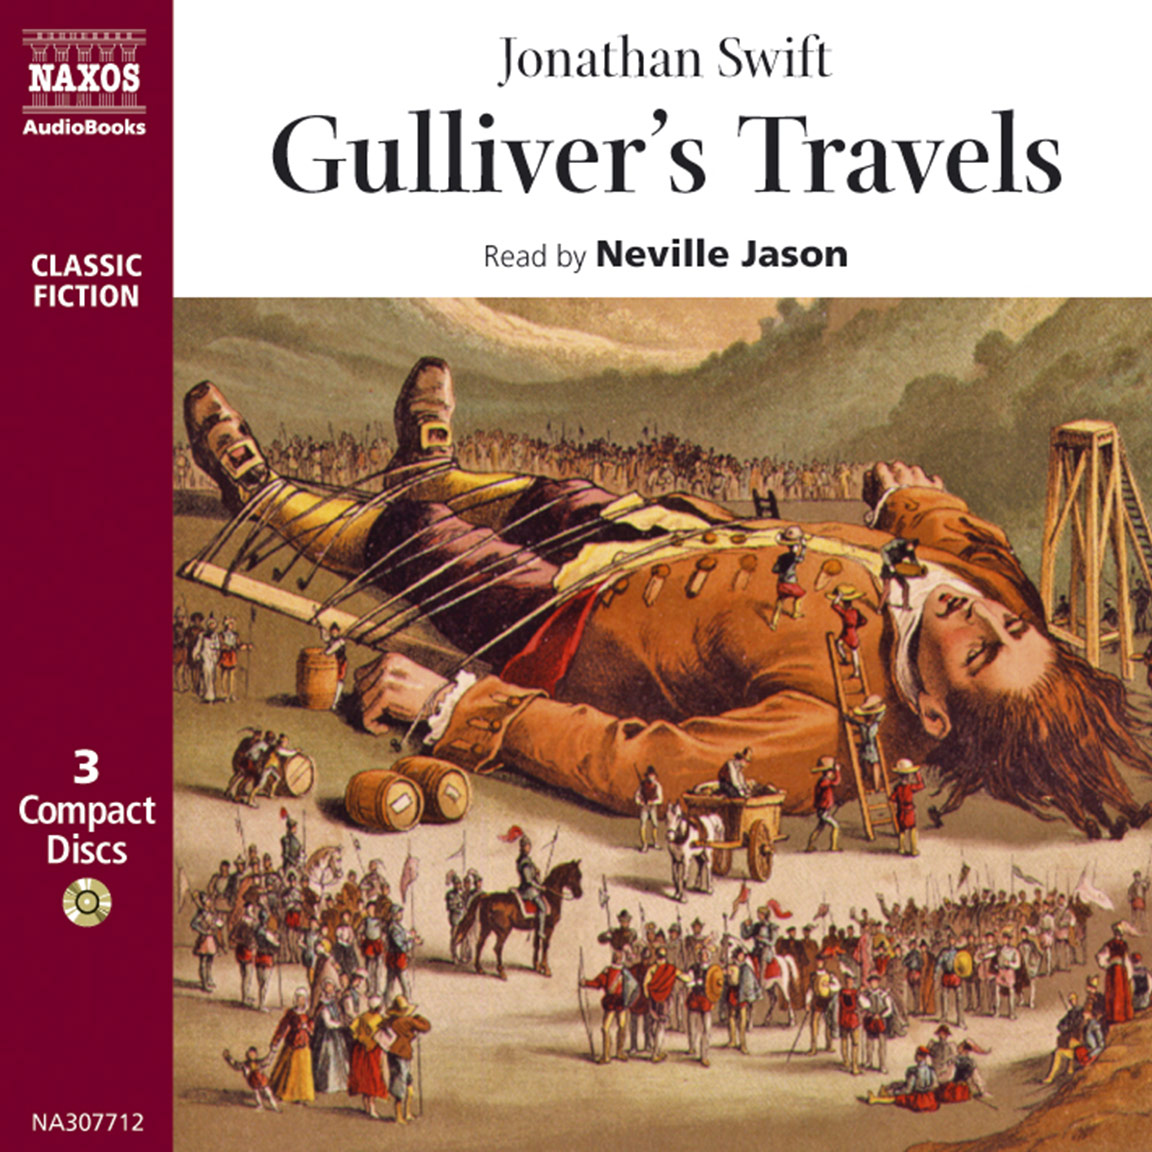 Gulliver's Travels: Theme Analysis